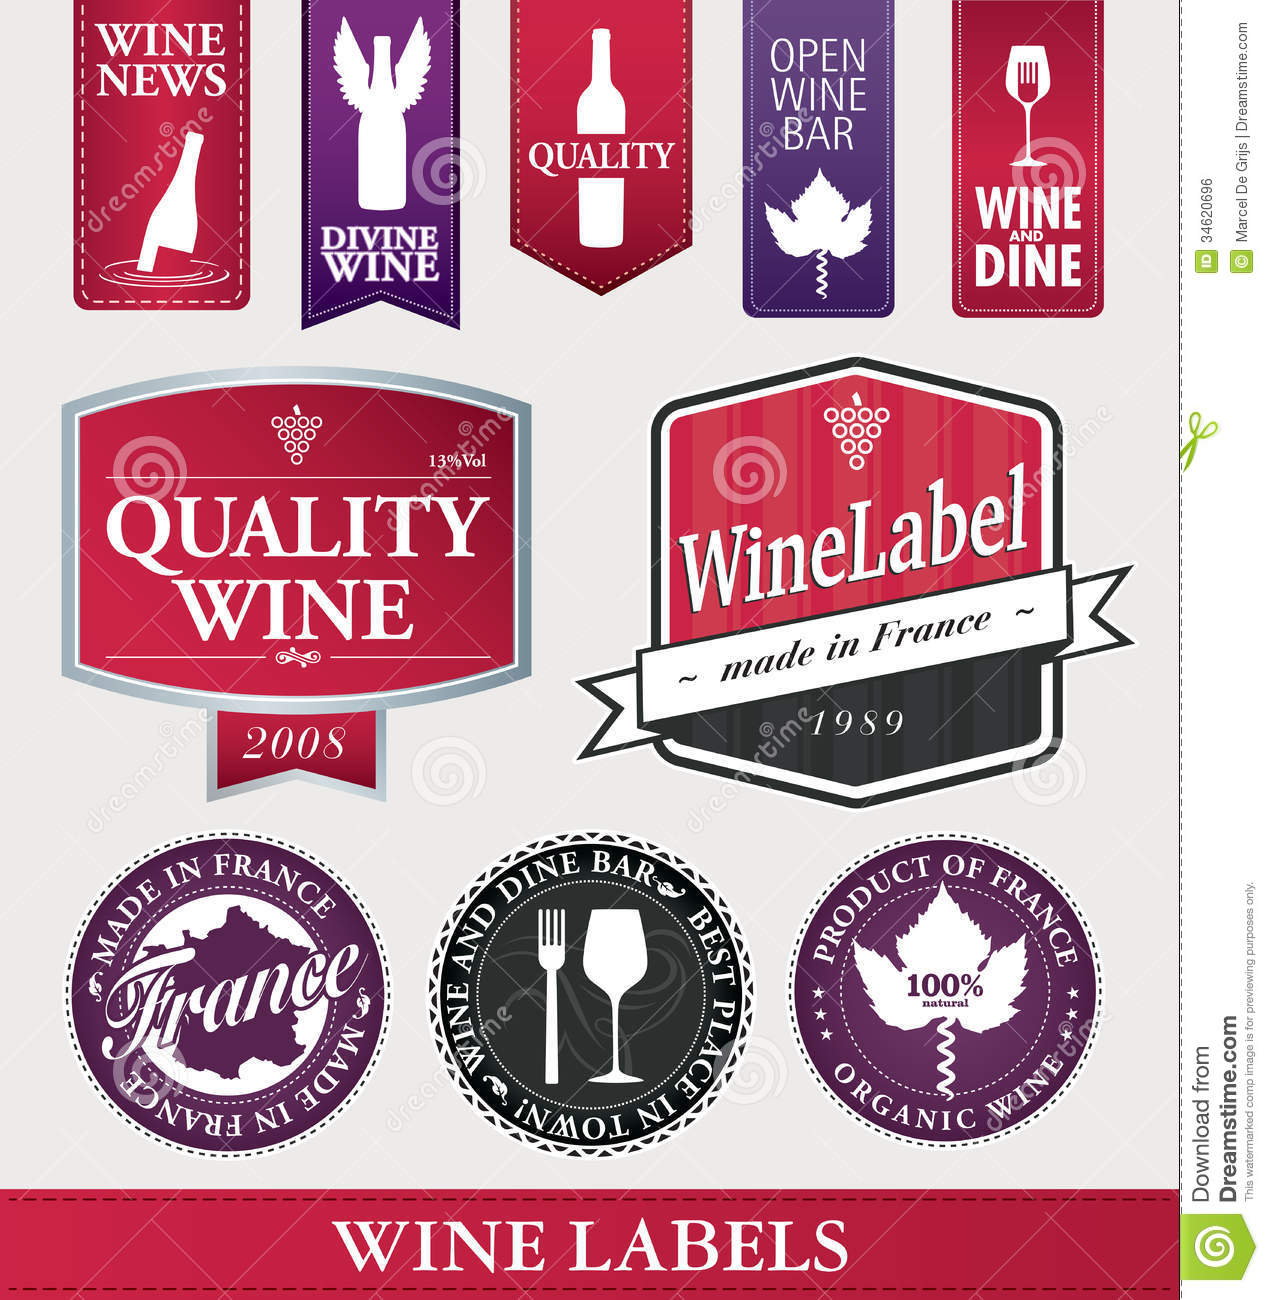 Decoration Restaurant Vintage Vector Wine Items And Labels Royalty Free Stock Image